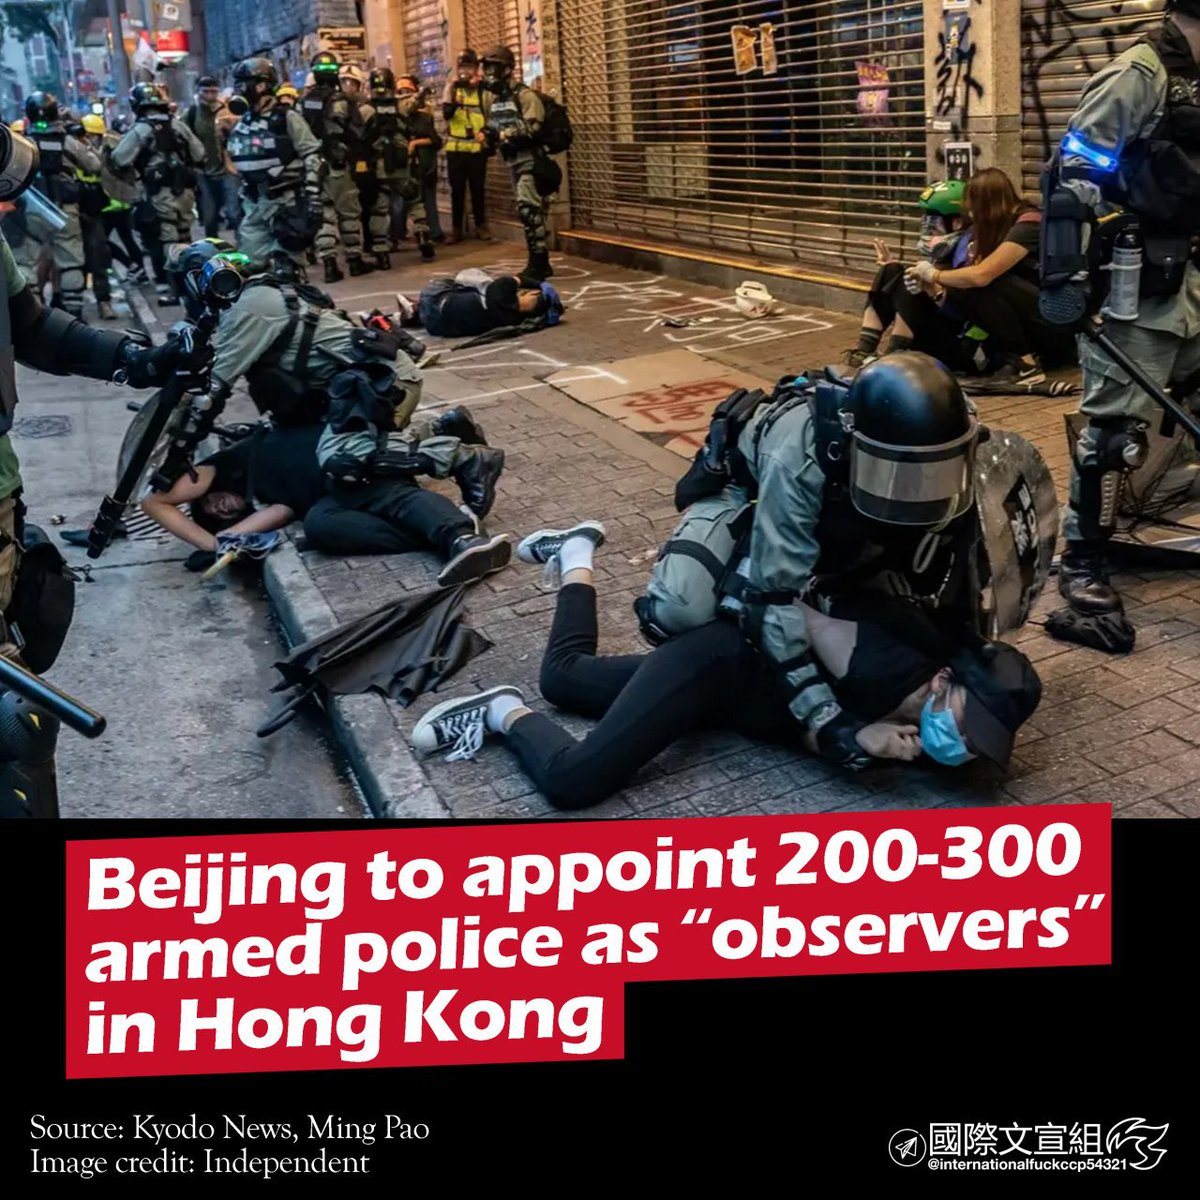 Finally they can put on their real uniform instead of pretending to be the rubbish HK police. - #HK #hongkong #police #beijing #ccp #armedpolice #english #DIYms https://t.co/ZnqqBKPM1P